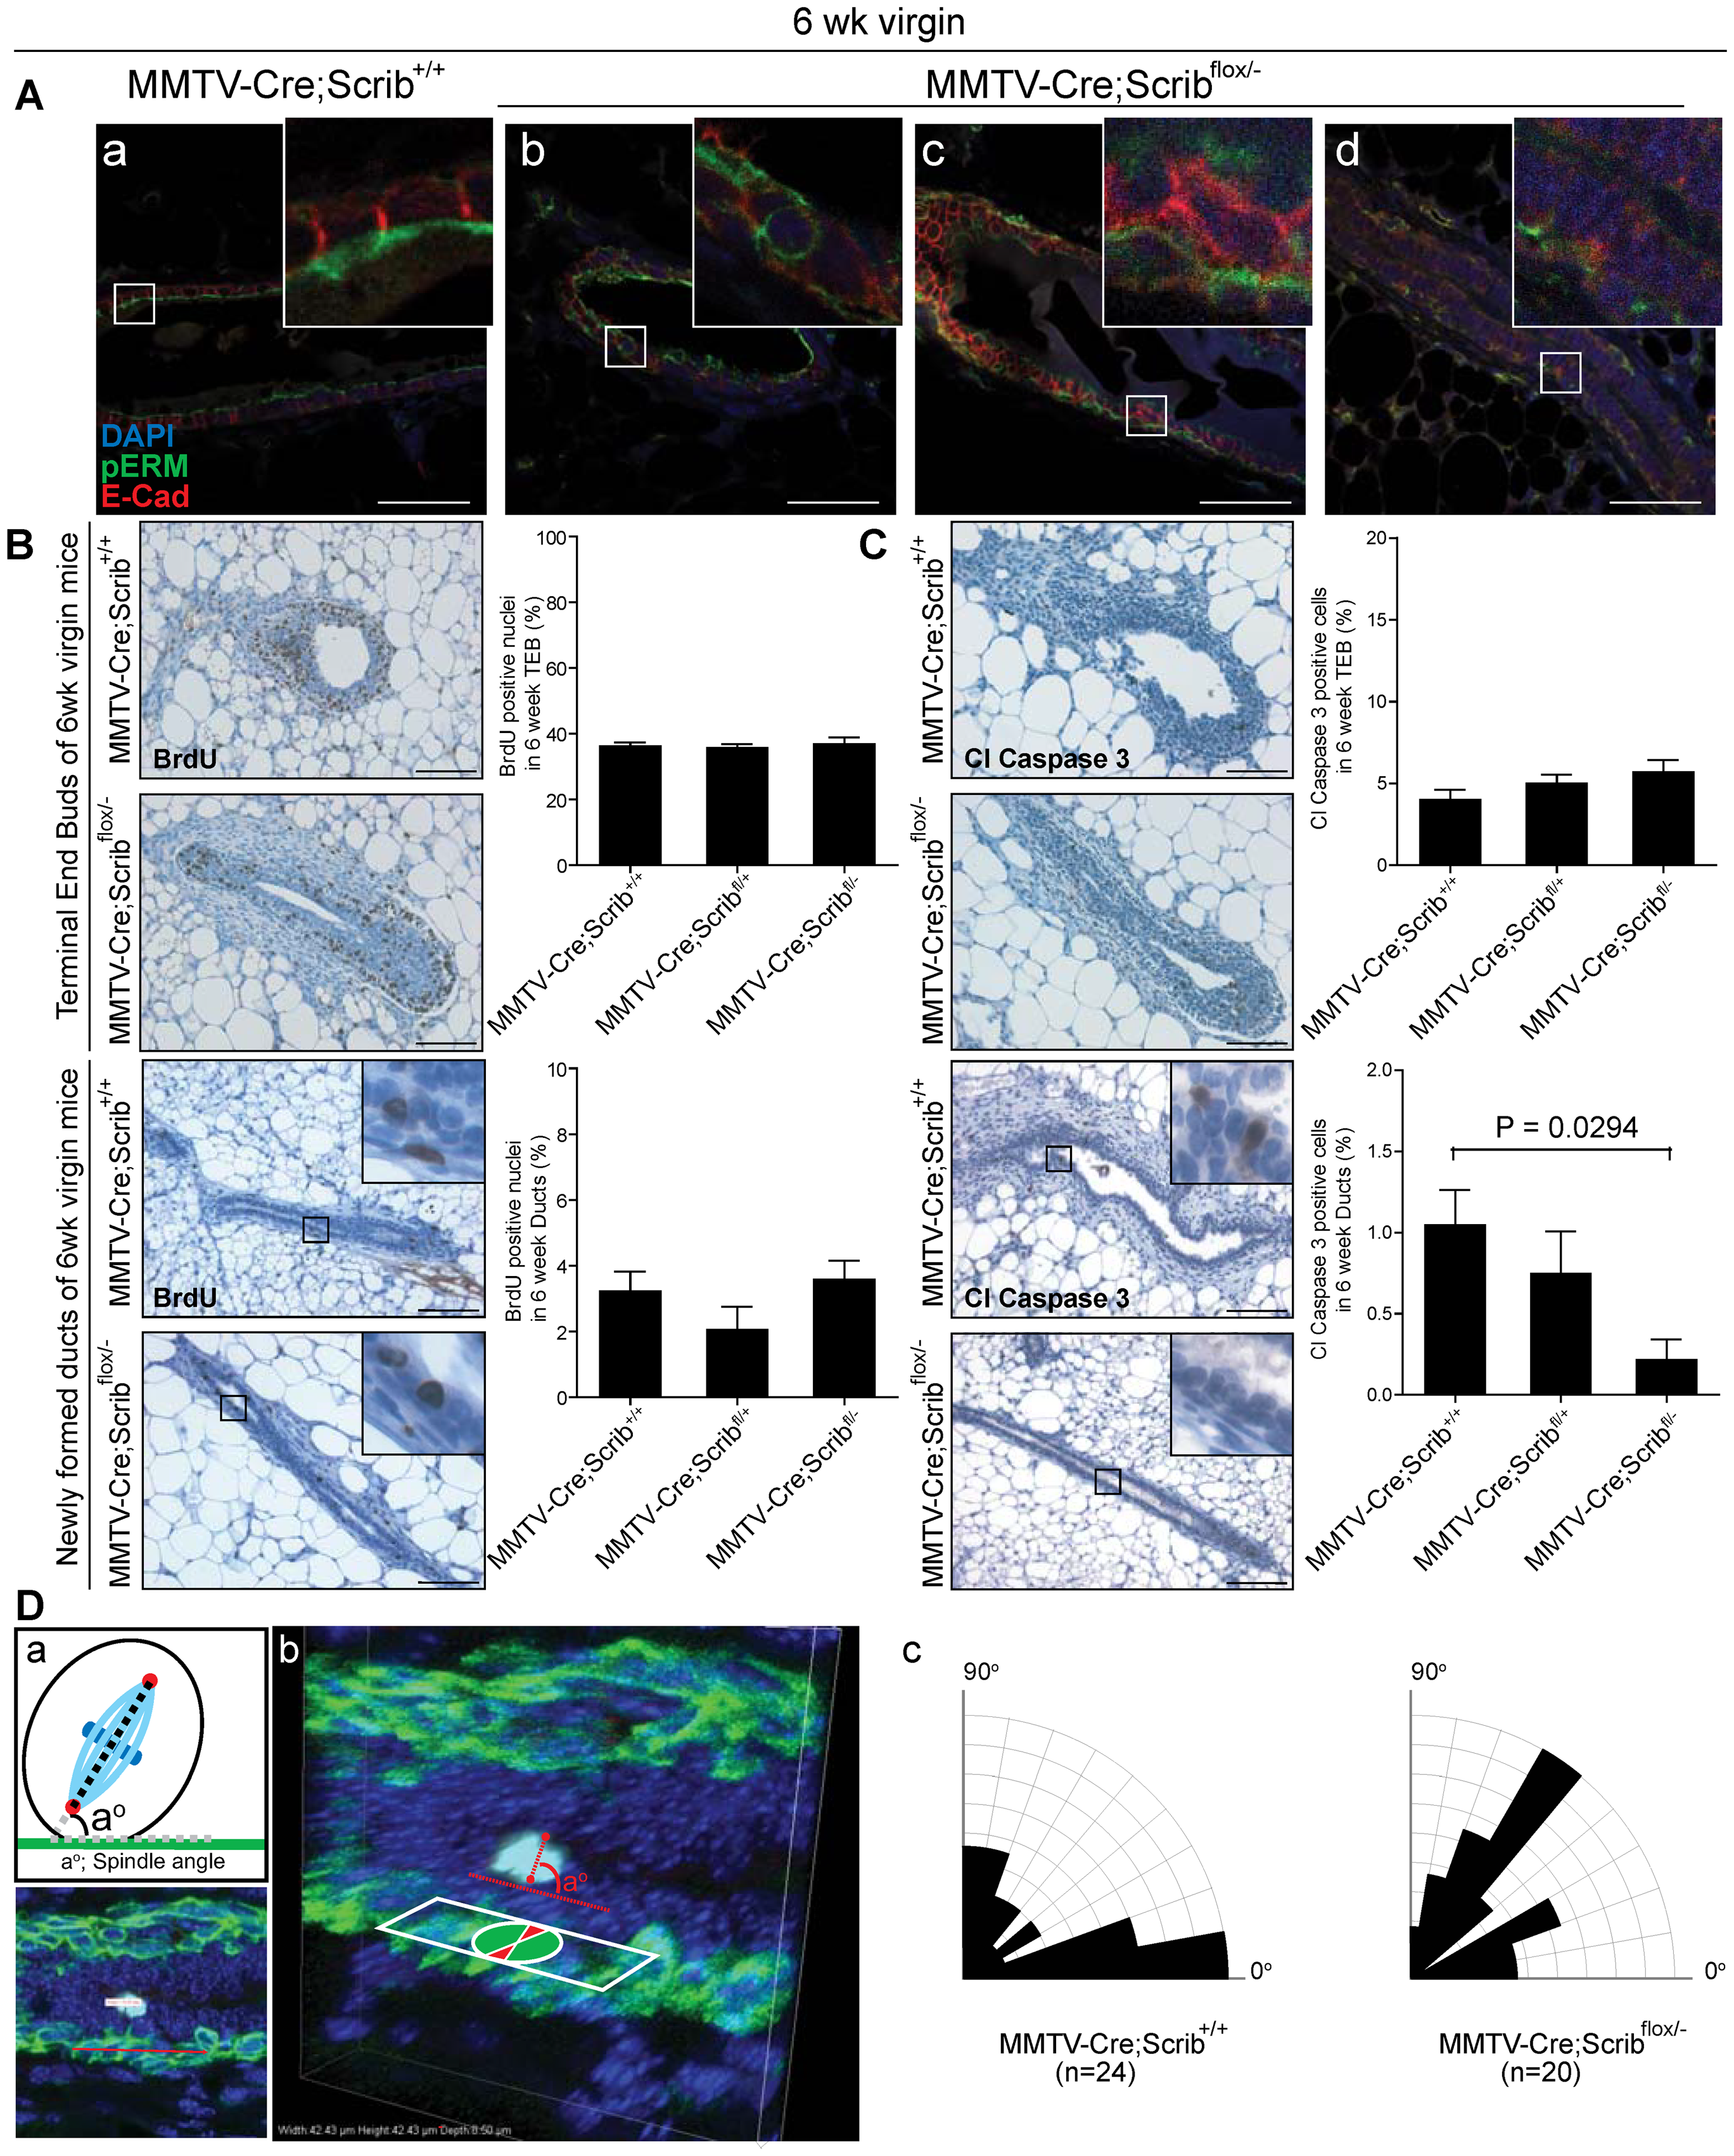 Hyperplasia is preceded by defects in cell polarity, apoptosis and spindle orientation during the remodelling and maturation of <i>Scrib</i>-deficient mammary ducts.